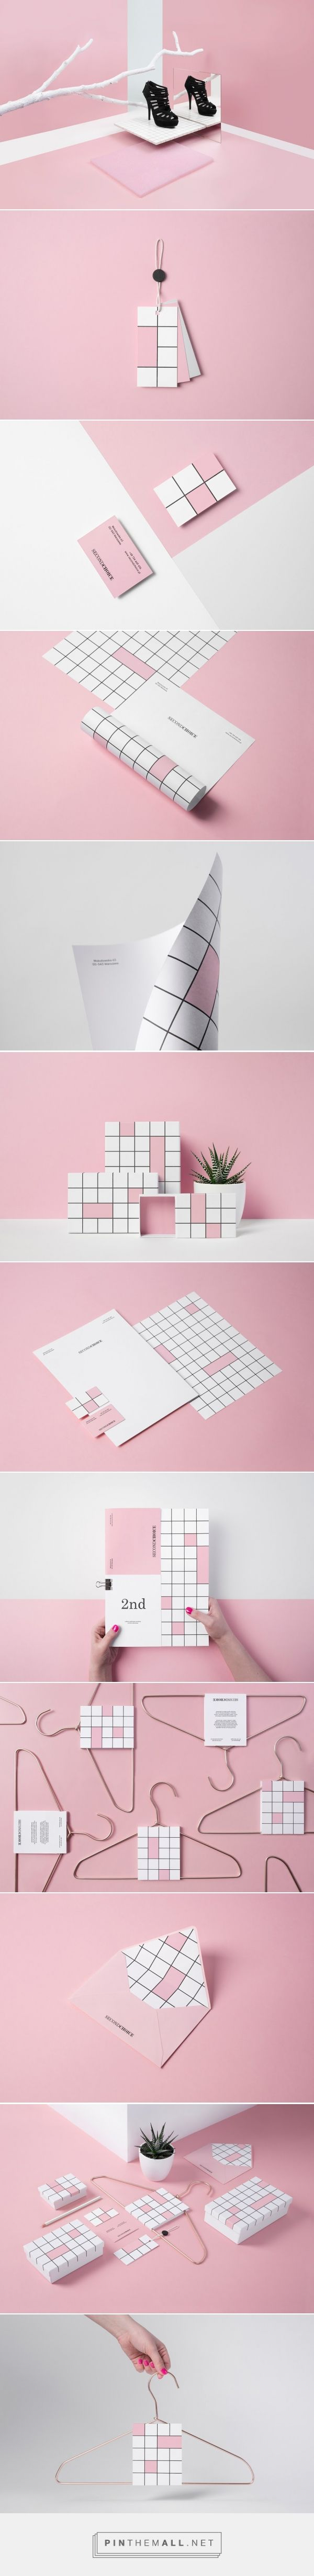 Lovely usage of blocks - Second Choice fashion brand design by Noeeko (Poland) - http://www.packagingoftheworld.com/2016/06/second-choice.html